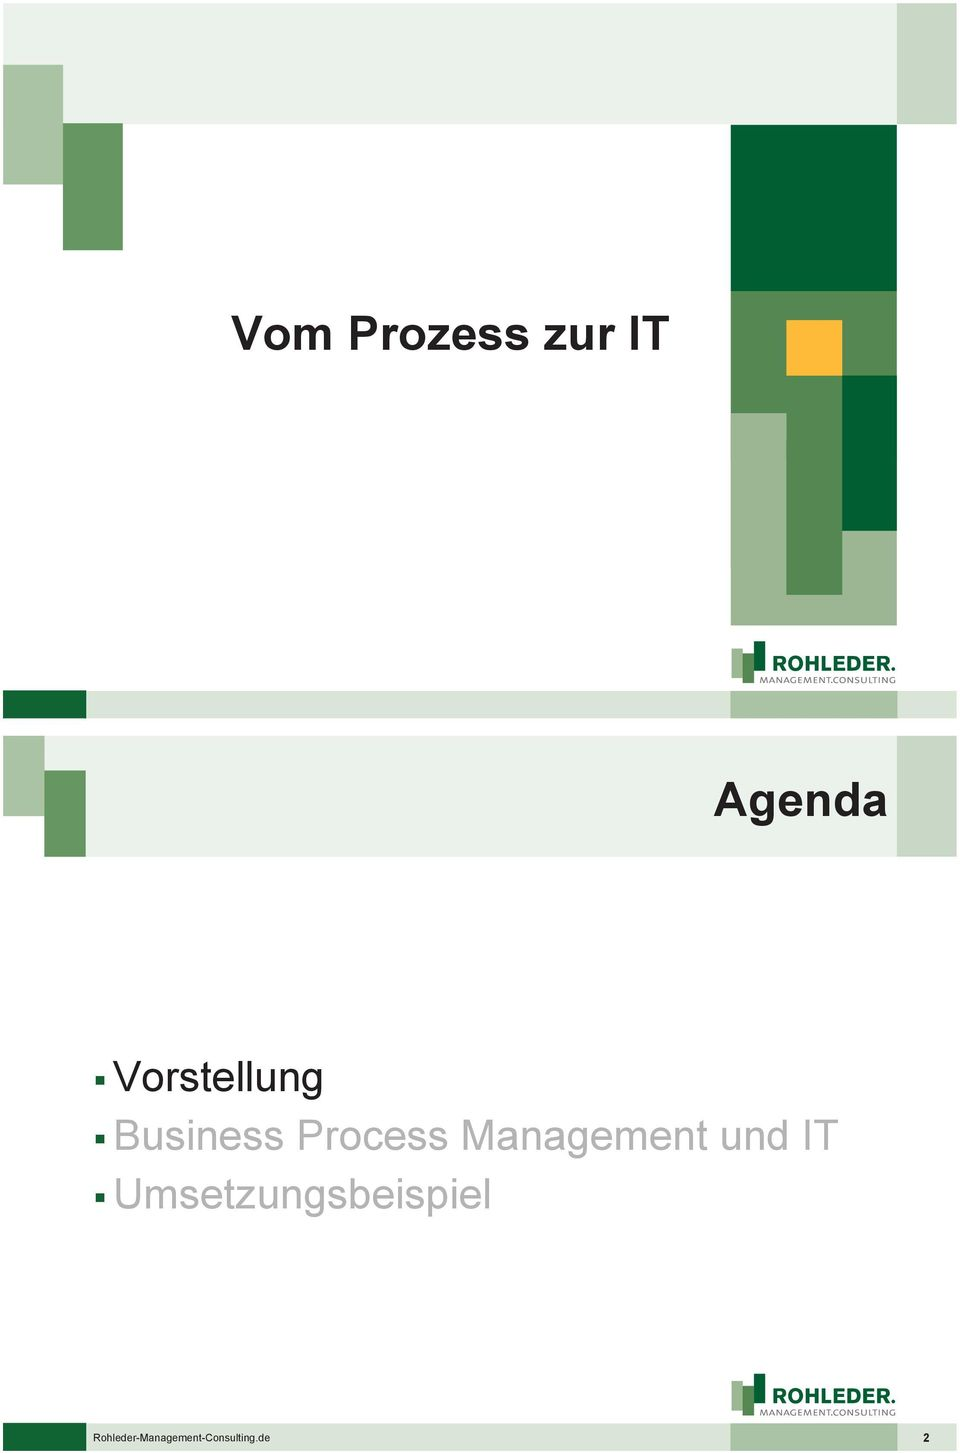 Management und IT